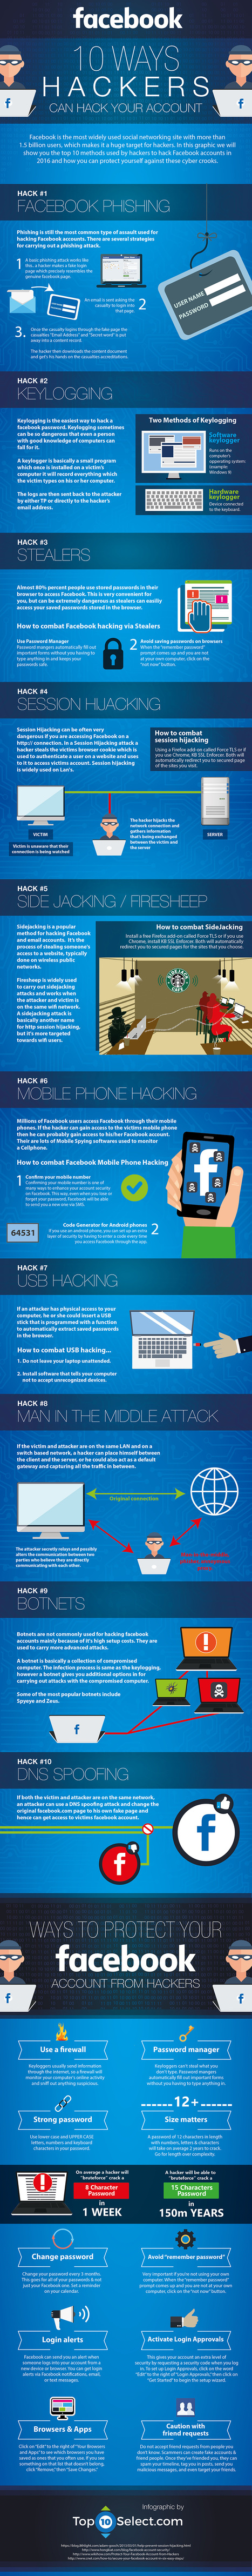 10 Ways Hackers Can Hack Your Facebook Account #Infographic | The Twinkie Awards | Scoop.it